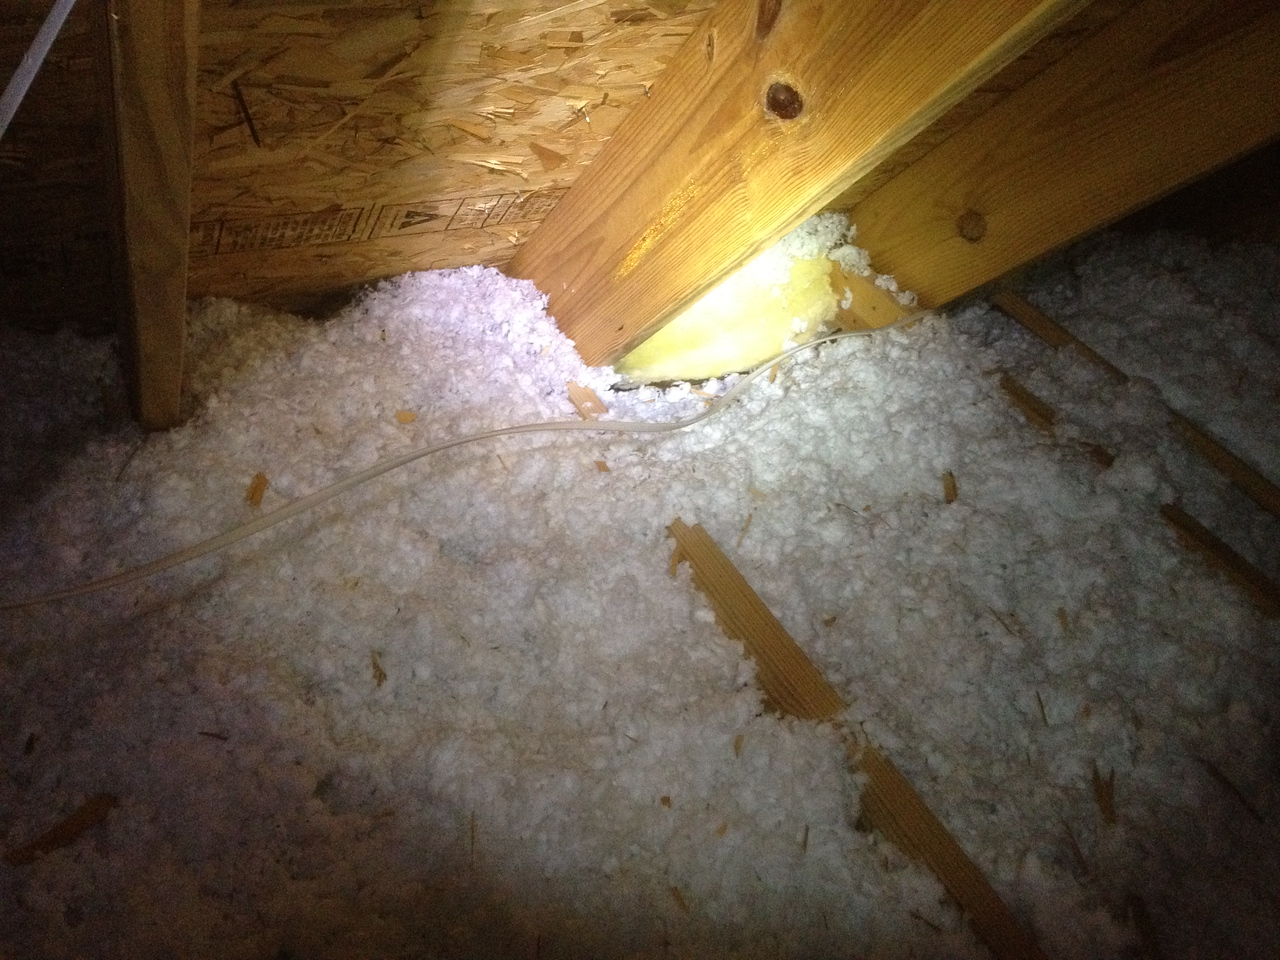 Examining accessibility from the attic